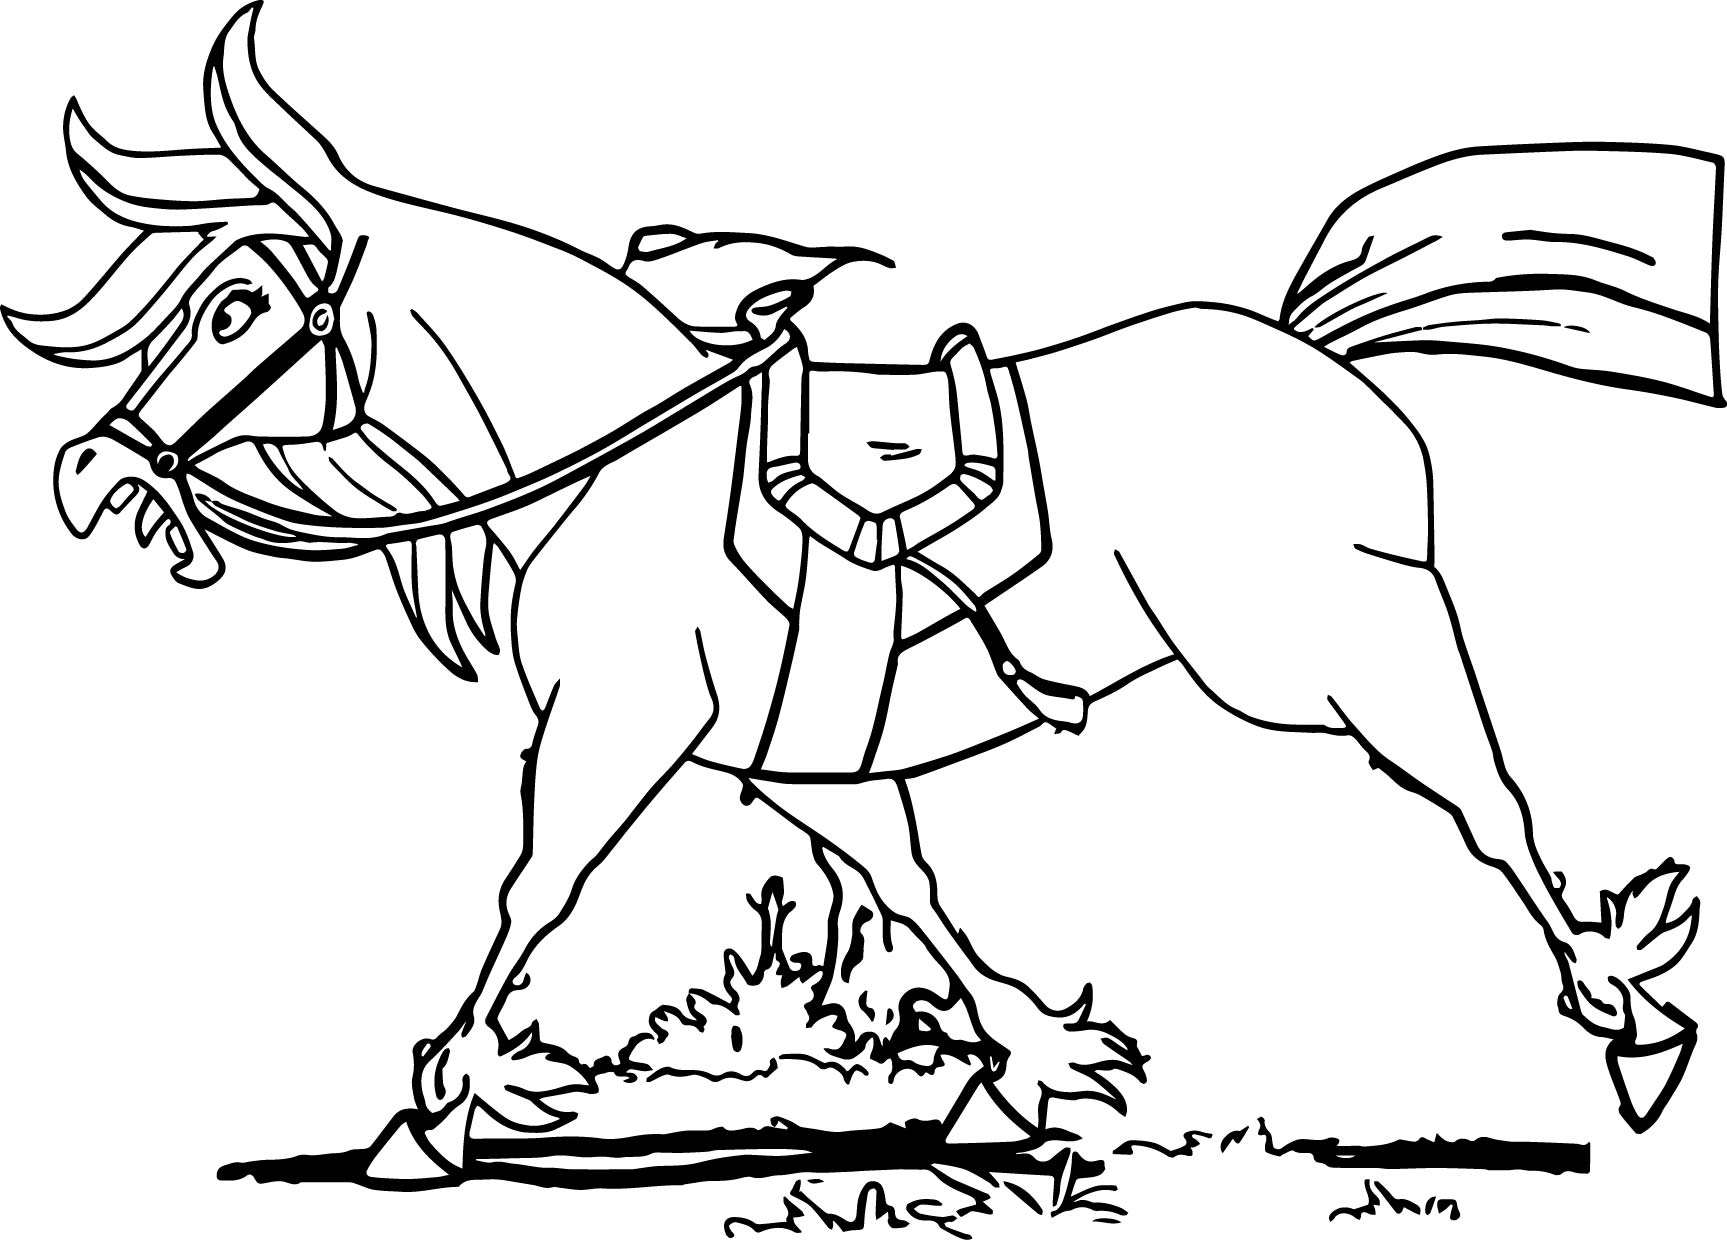 knight on horse coloring page comic knight on horse coloring book art sketches knight horse page knight on coloring